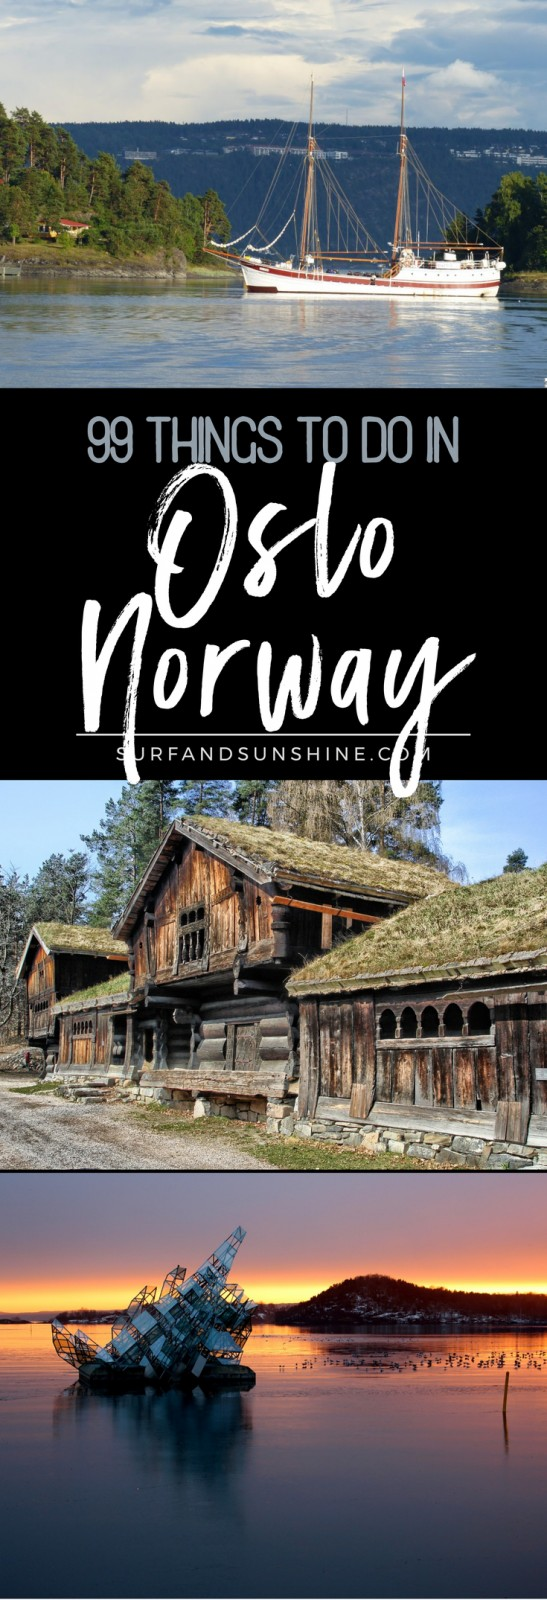 99 things to do in oslo norway twitter